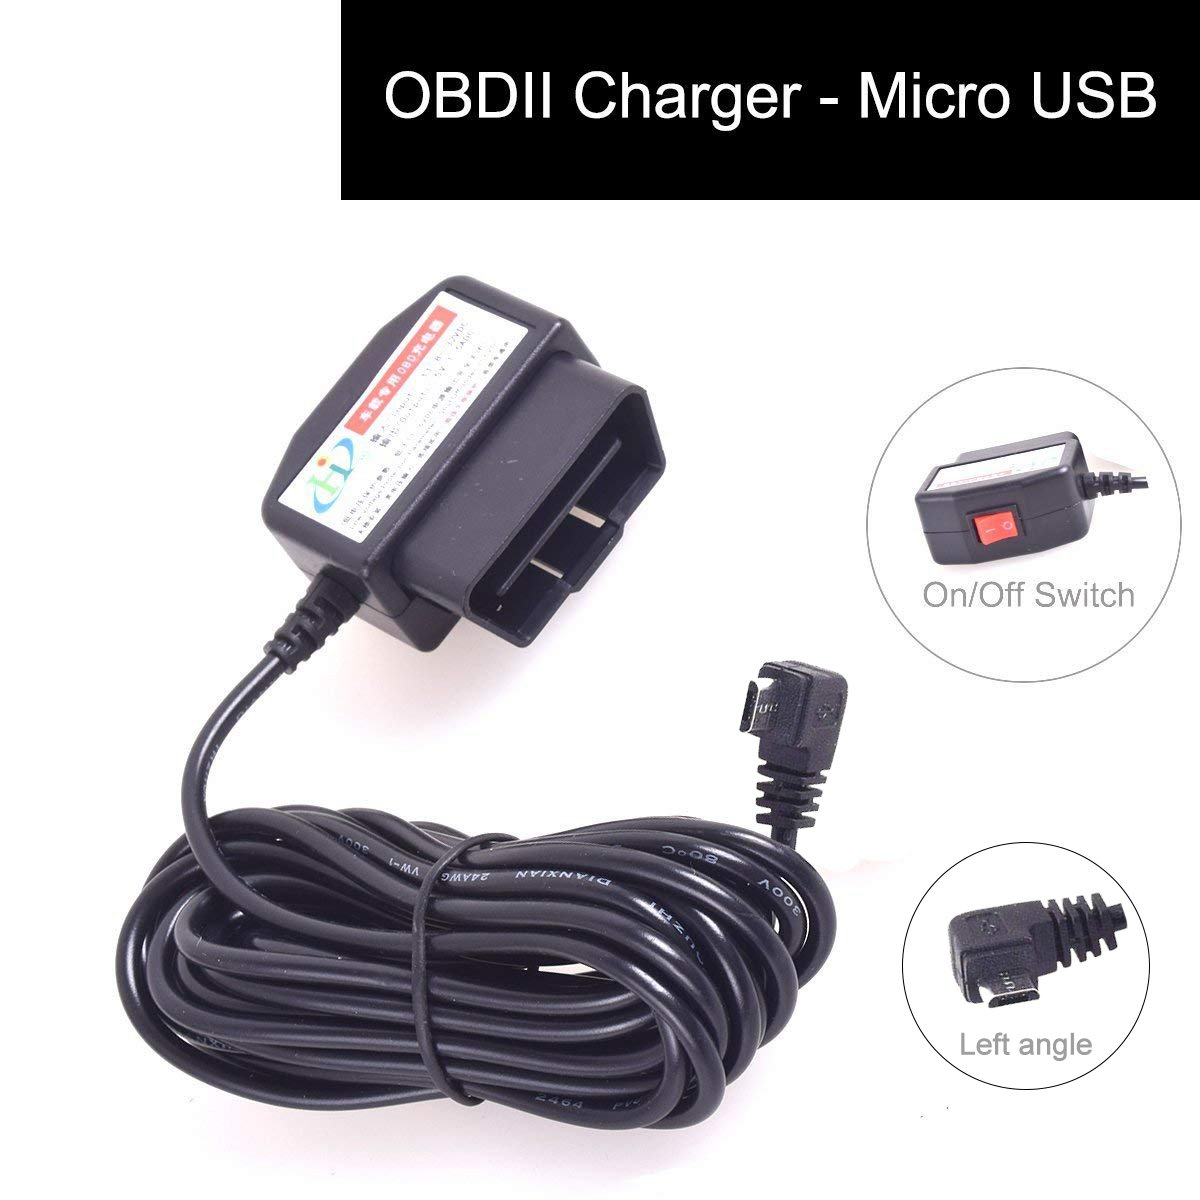 Car OBD2 Dash Camera DVR Charging Cable Micro USB Power Adapter with Switch Button - 16Pin OBD2 Connector Direct Charger for Gps Camcorder Tablet E-dog Phone(HTC Samsung Blackberry) - 11.5FT 12-24V